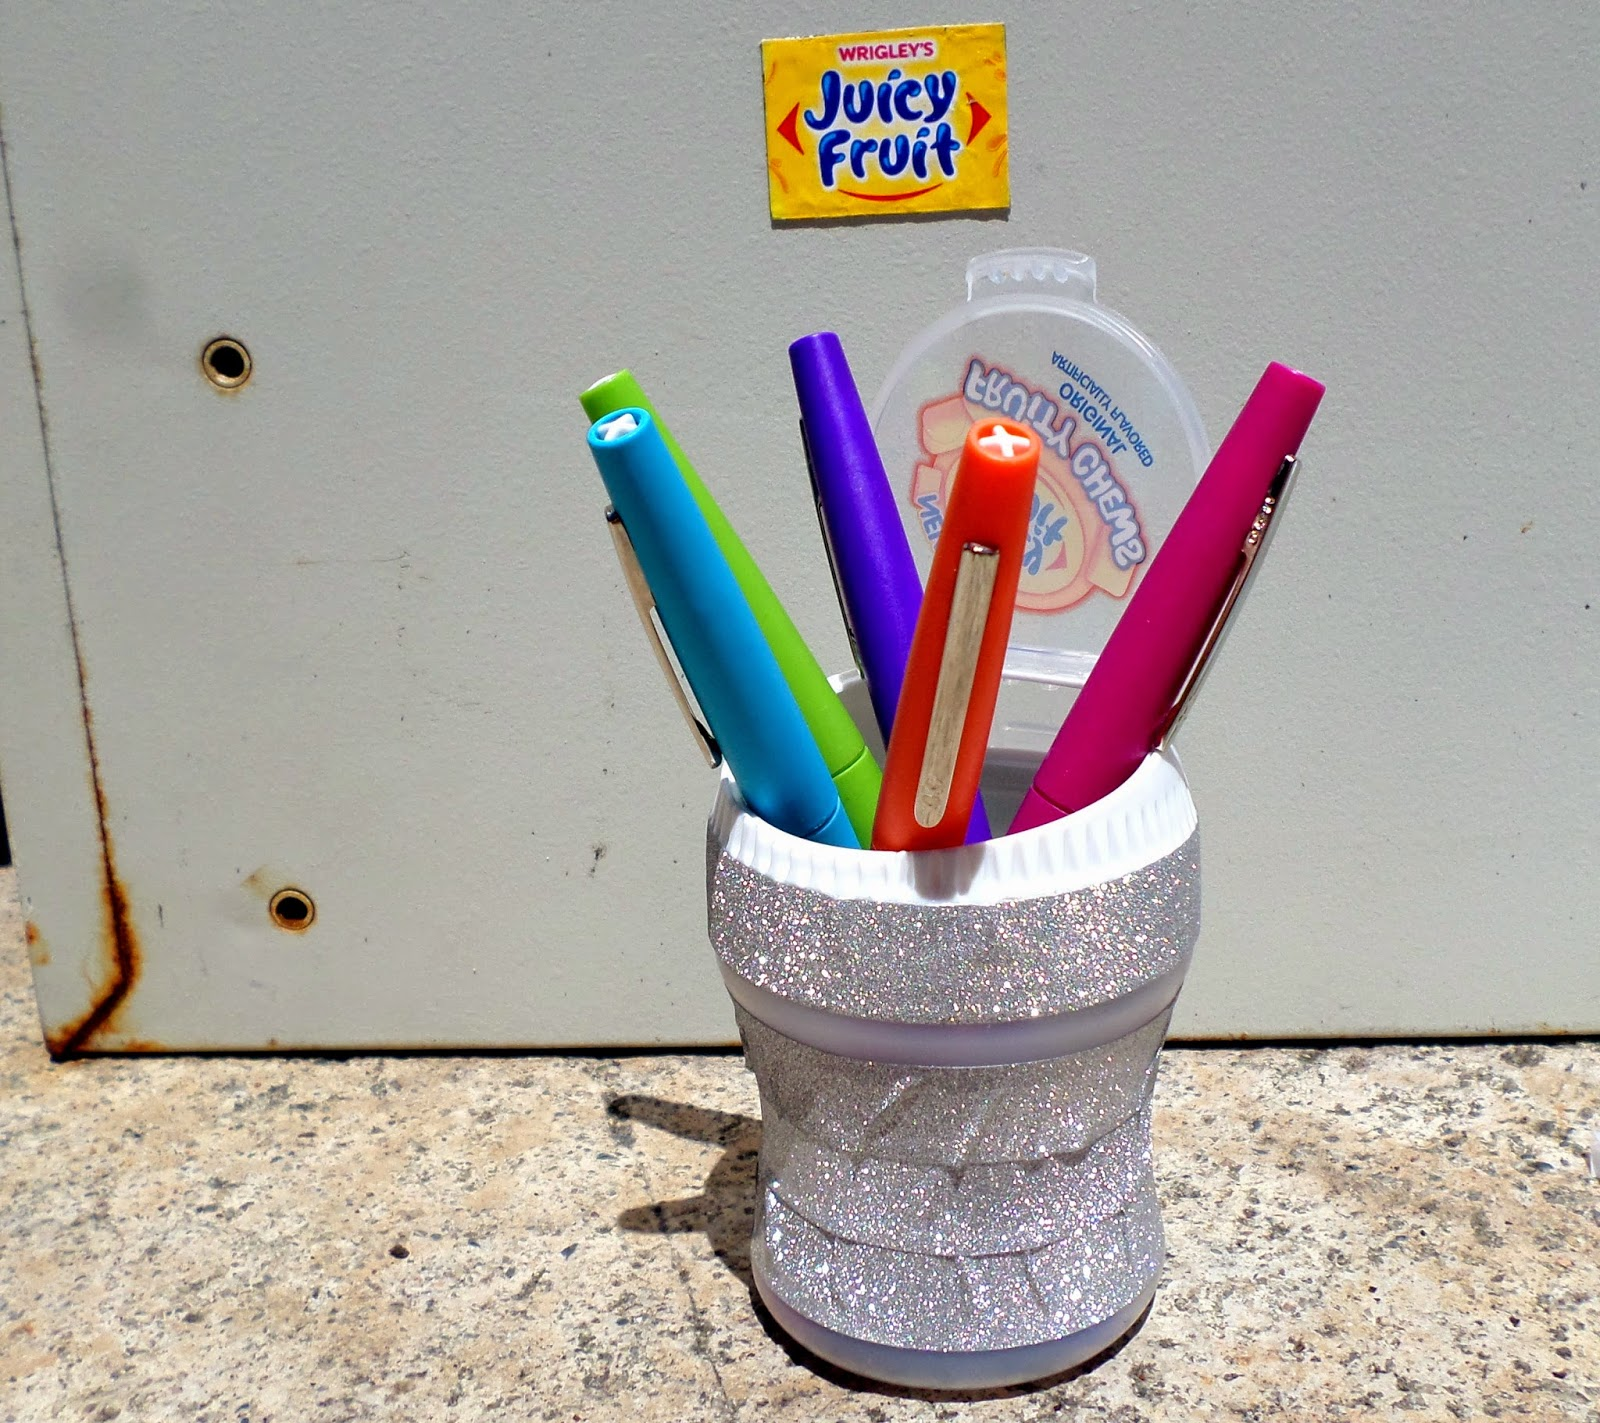 Summer Fun Juicy Fruit Gum Upcycled Magnet Pencil Cup #JuicyFruitFunSide #shop